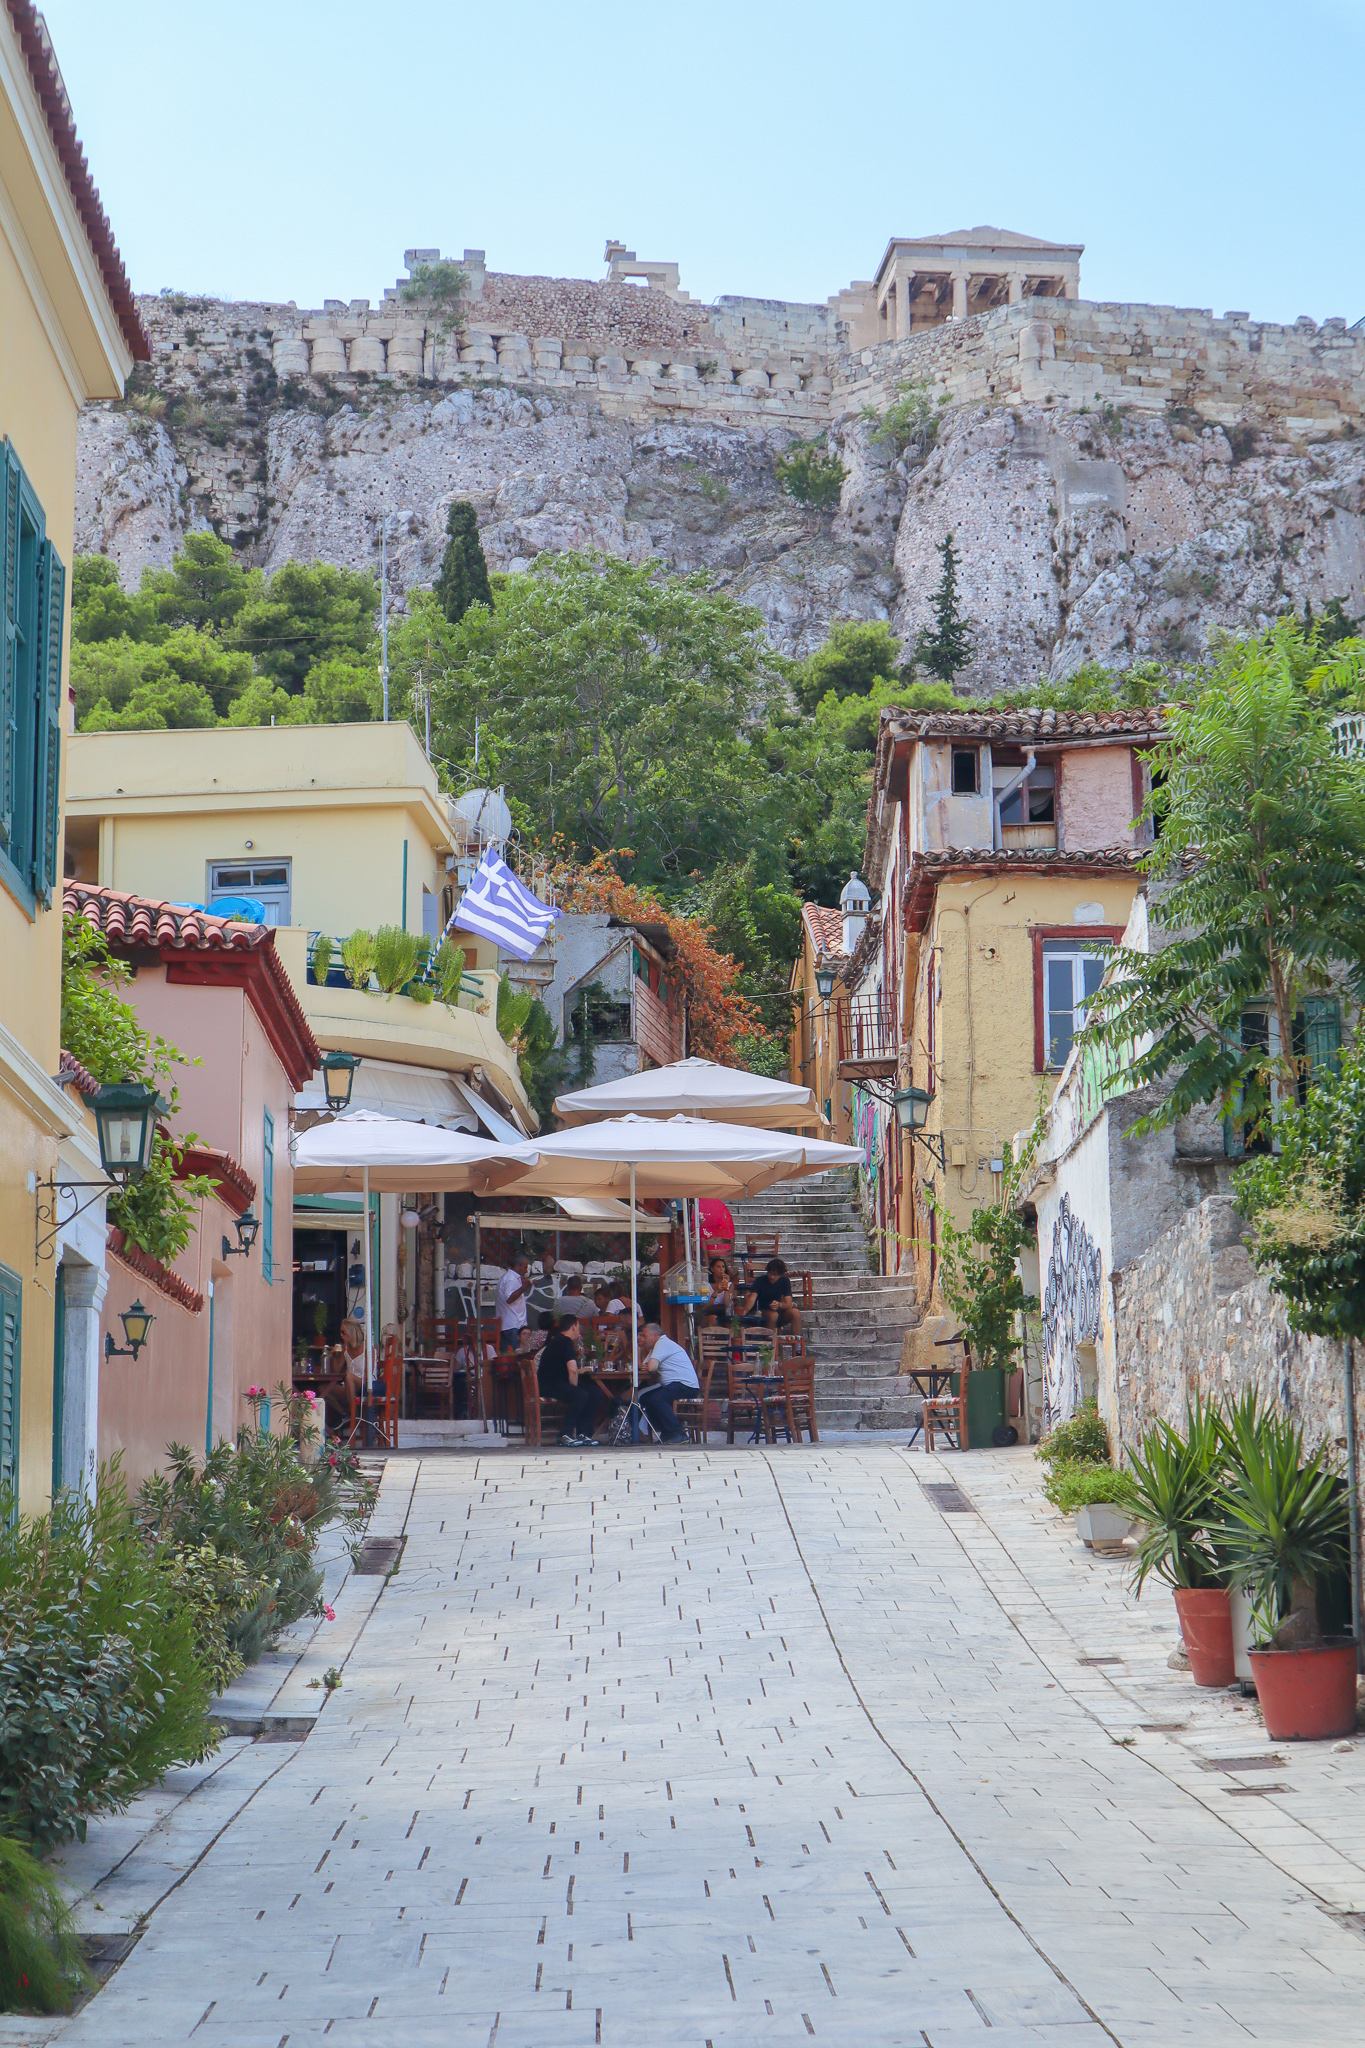 Near the Plaka area